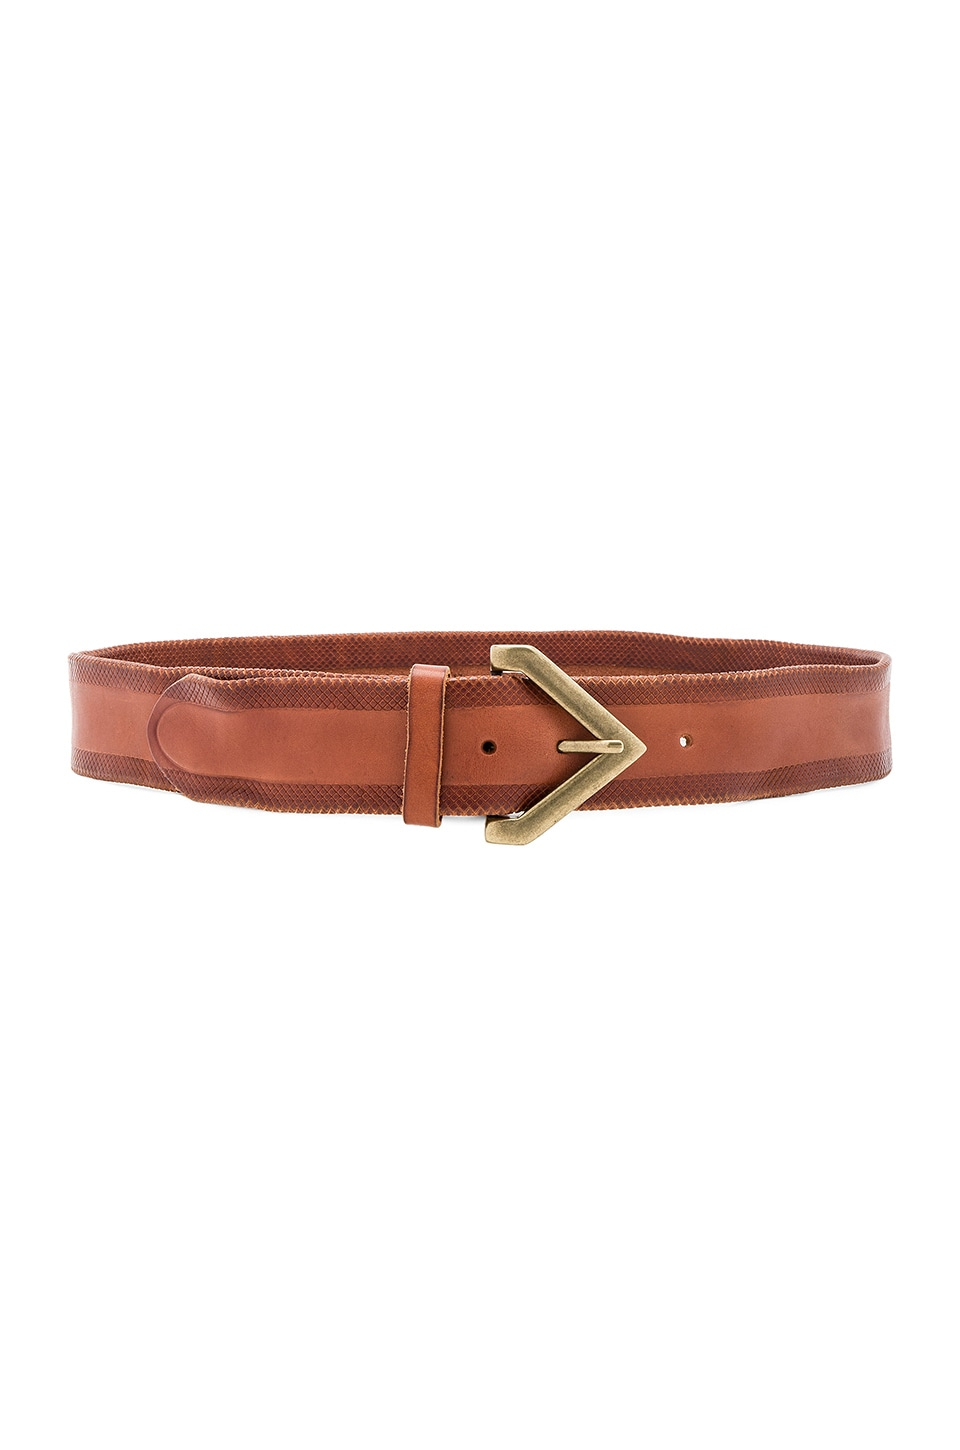 Triangle Buckle Belt by Linea Pelle